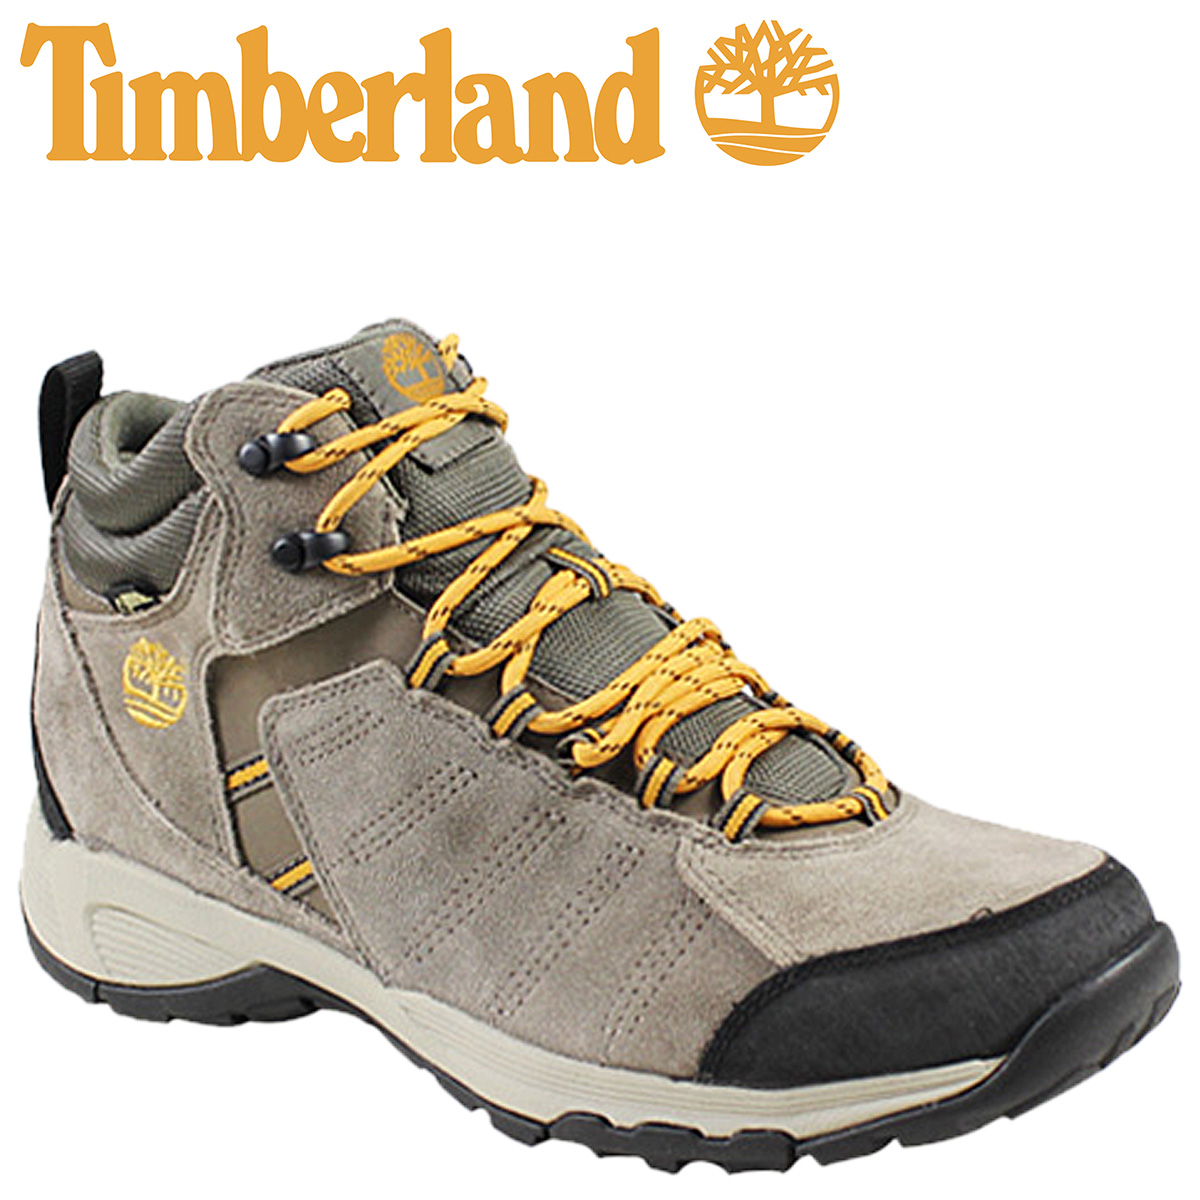 9c811deaaa9 [SOLD OUT] Timberland Timberland boots TILTON MID GORE-TEX HIKING BOOT  9731R W wise men